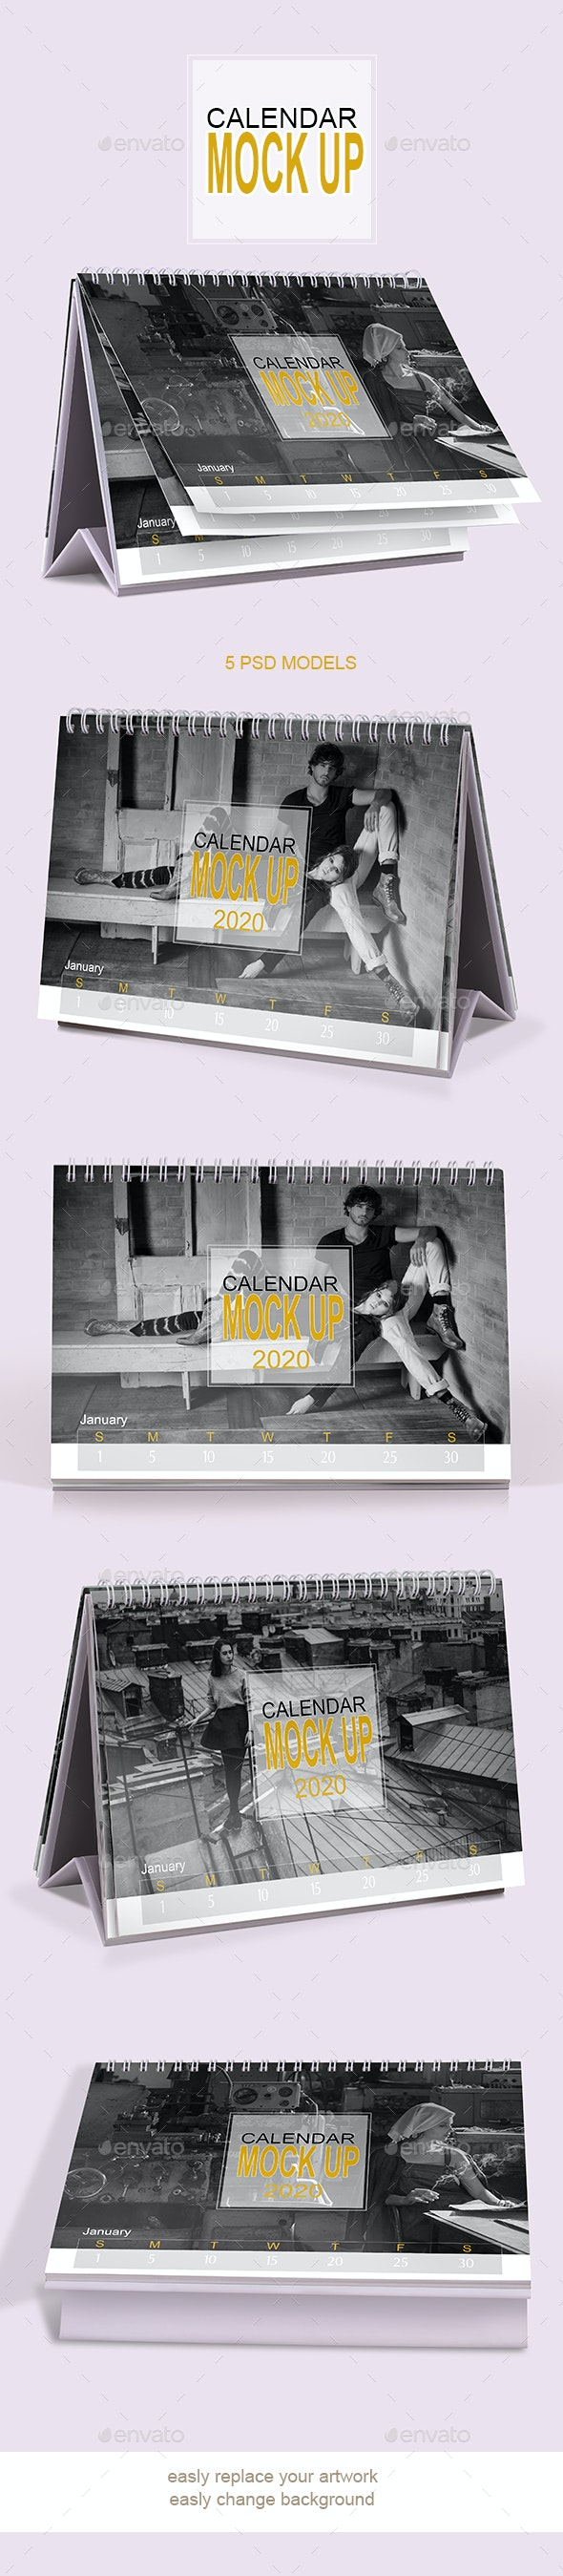 Calendar Mockup - Product Mock-Ups Graphics